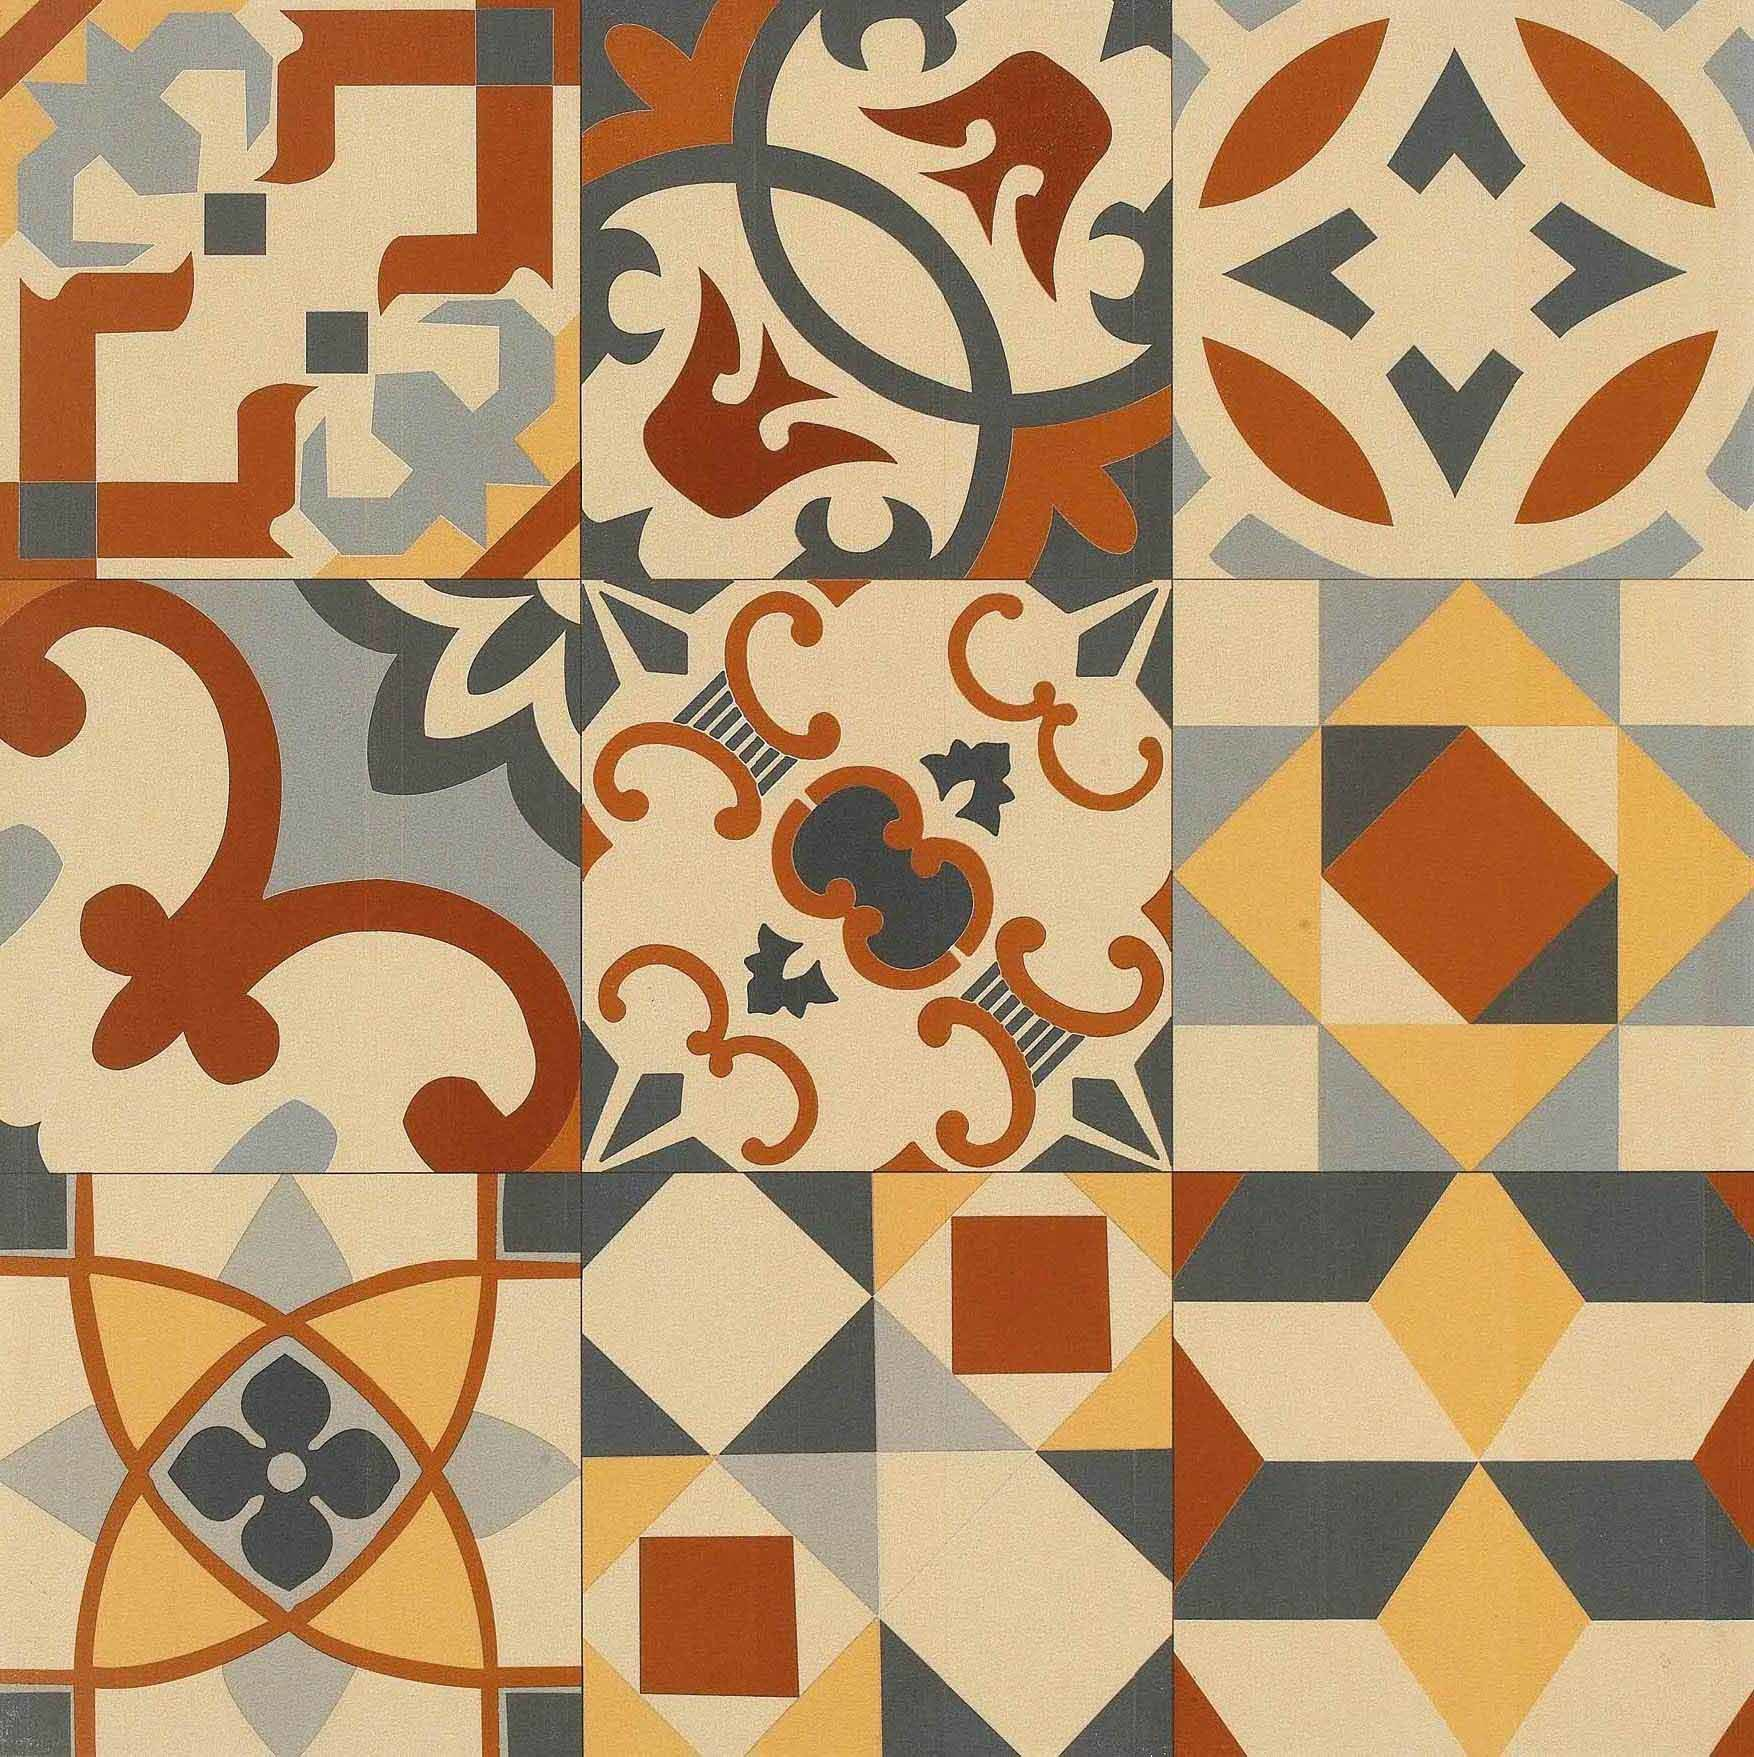 Fancy Spanish Decorative Wall Tiles Sketch - The Wall Art ...